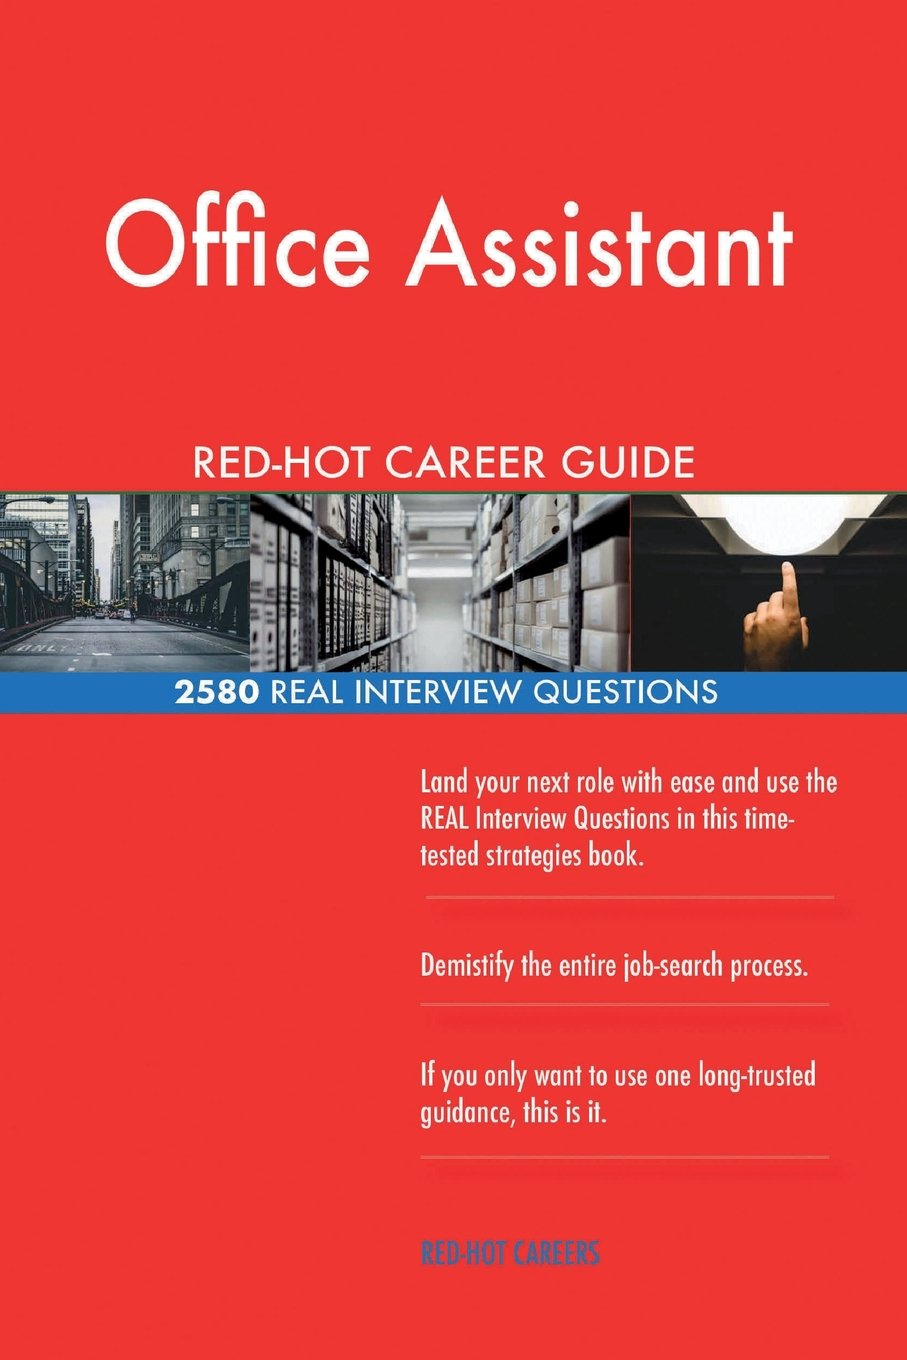 Office Assistant RED-HOT Career Guide